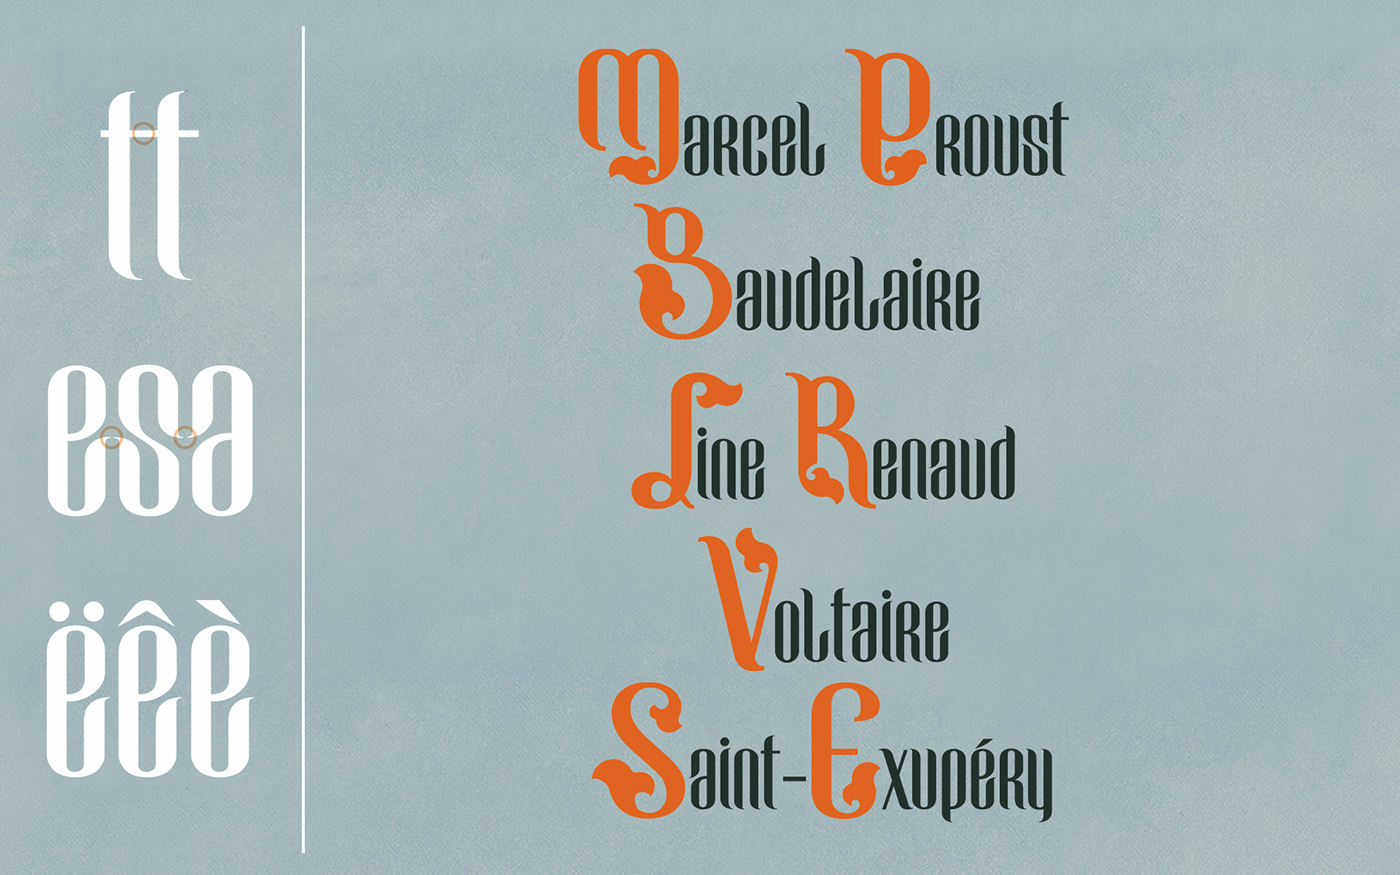 Grunwald old type French art condensed free download